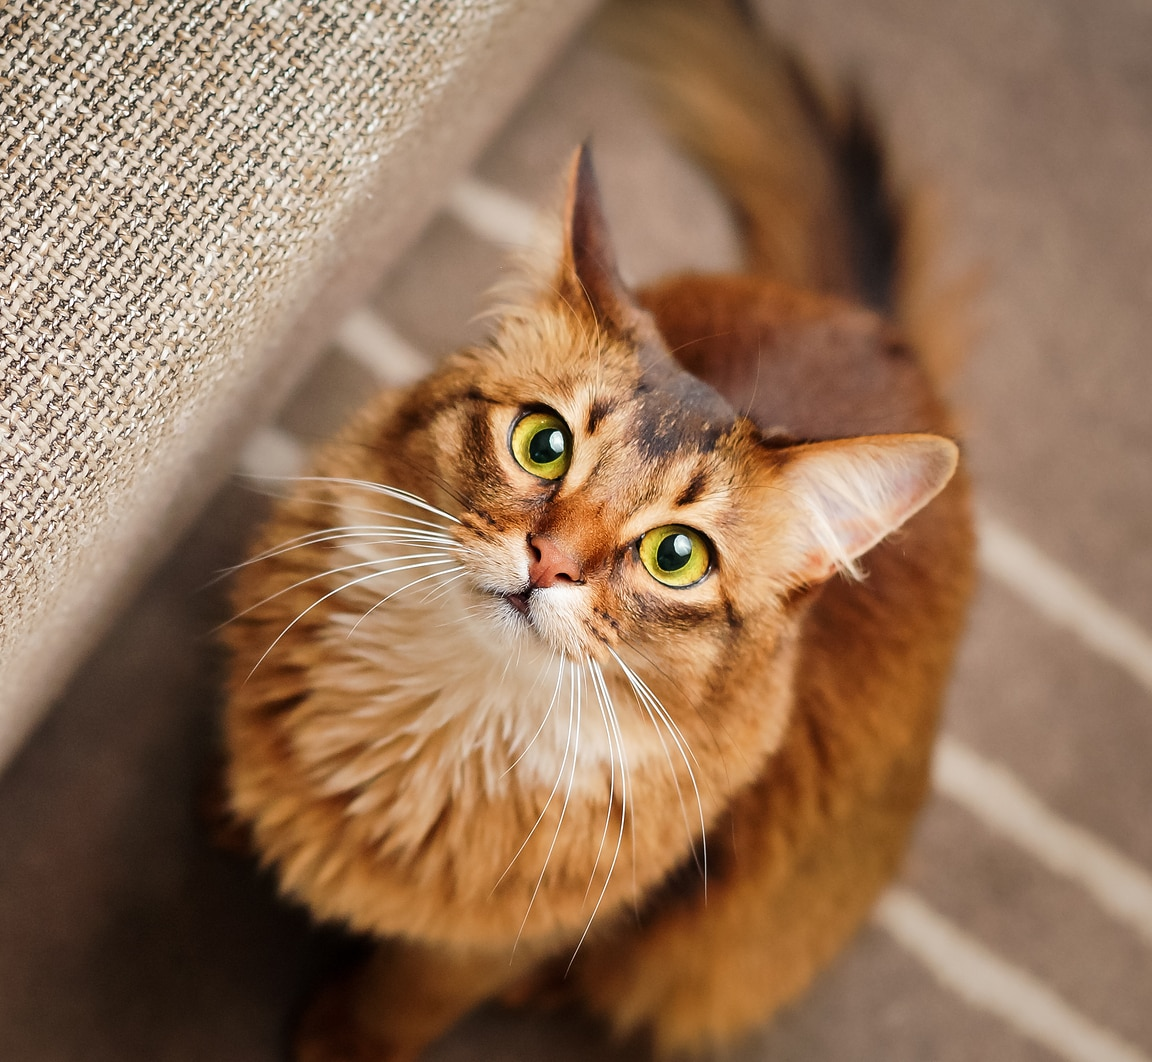 Purebred ruddy somali cat looking up staring at the camera.